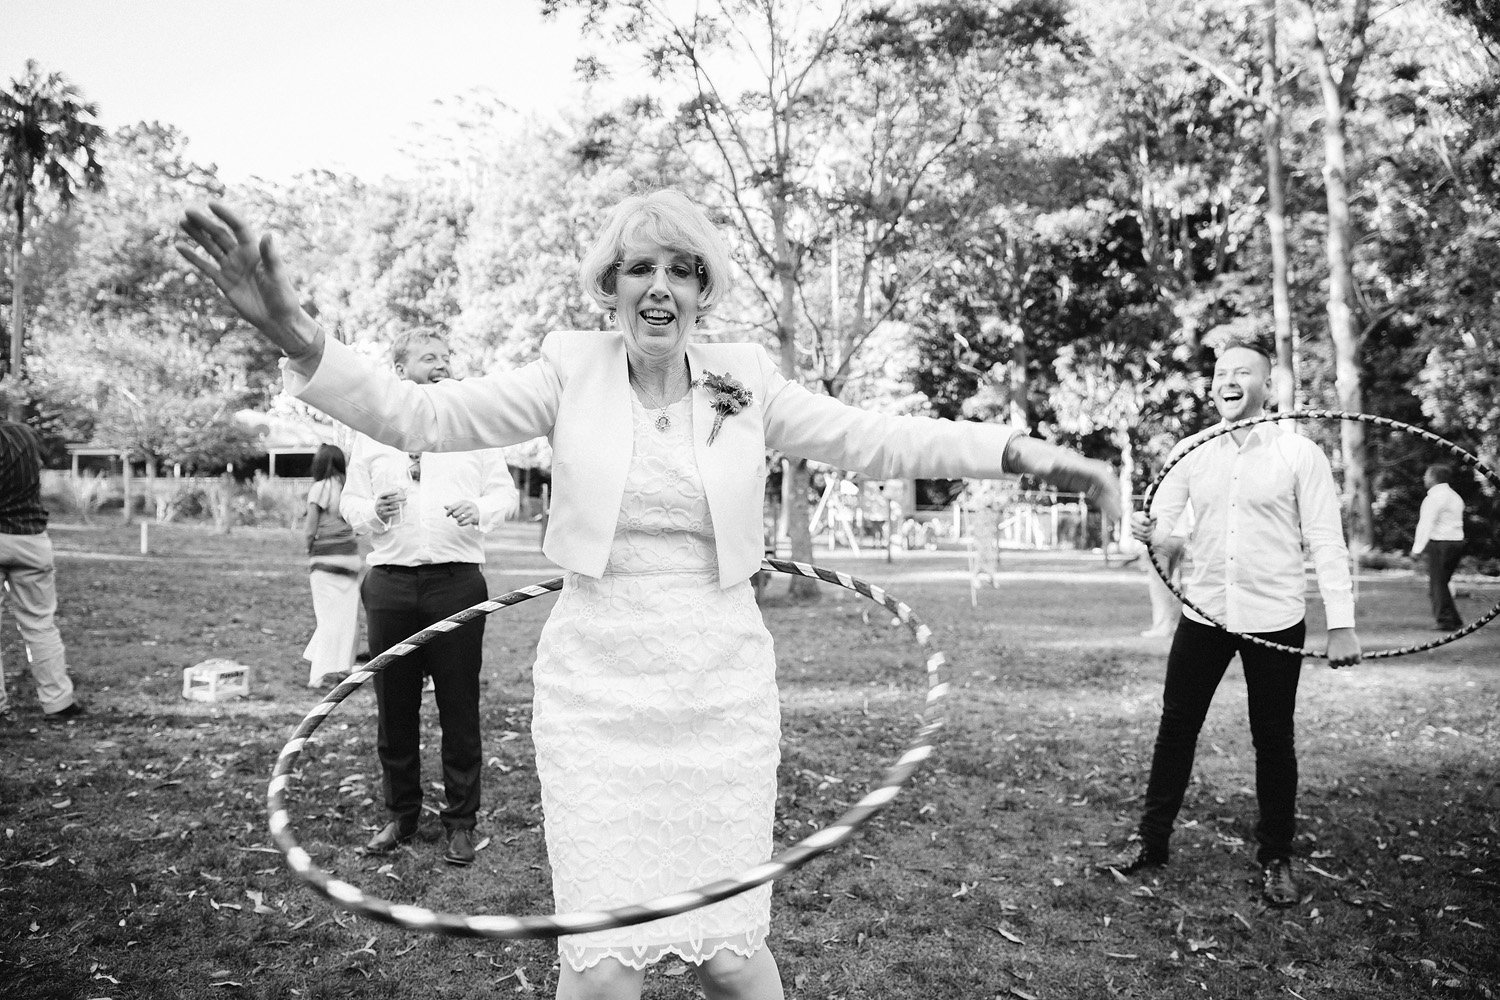 Guest hoola hooping at wedding